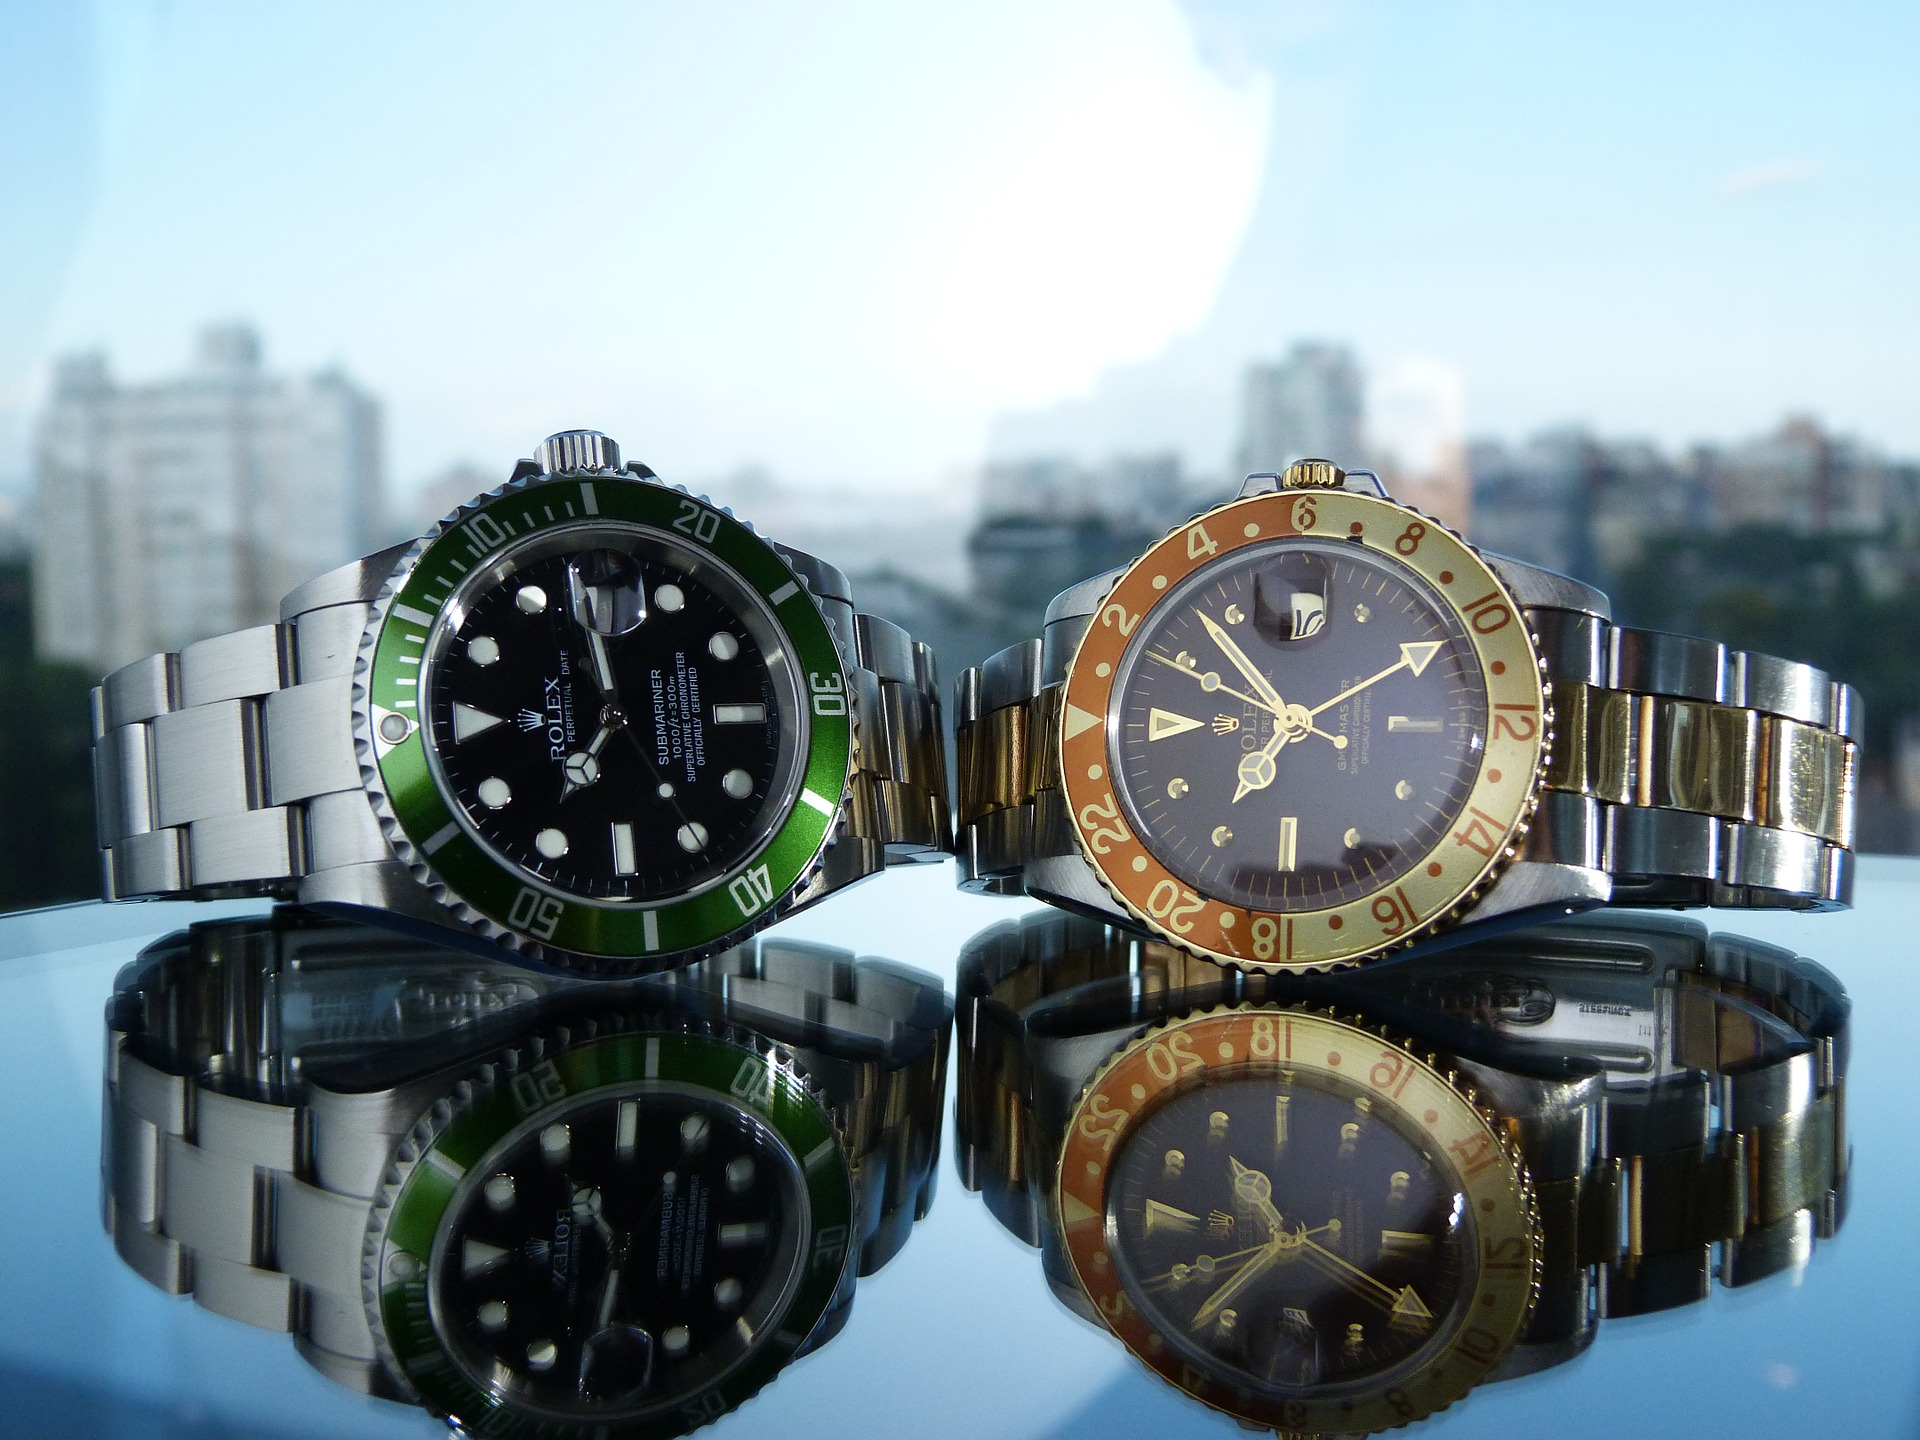 The 10 Best GPS Running Watches to Buy in 2019 The 10 Best GPS Running Watches to Buy in 2019 new images